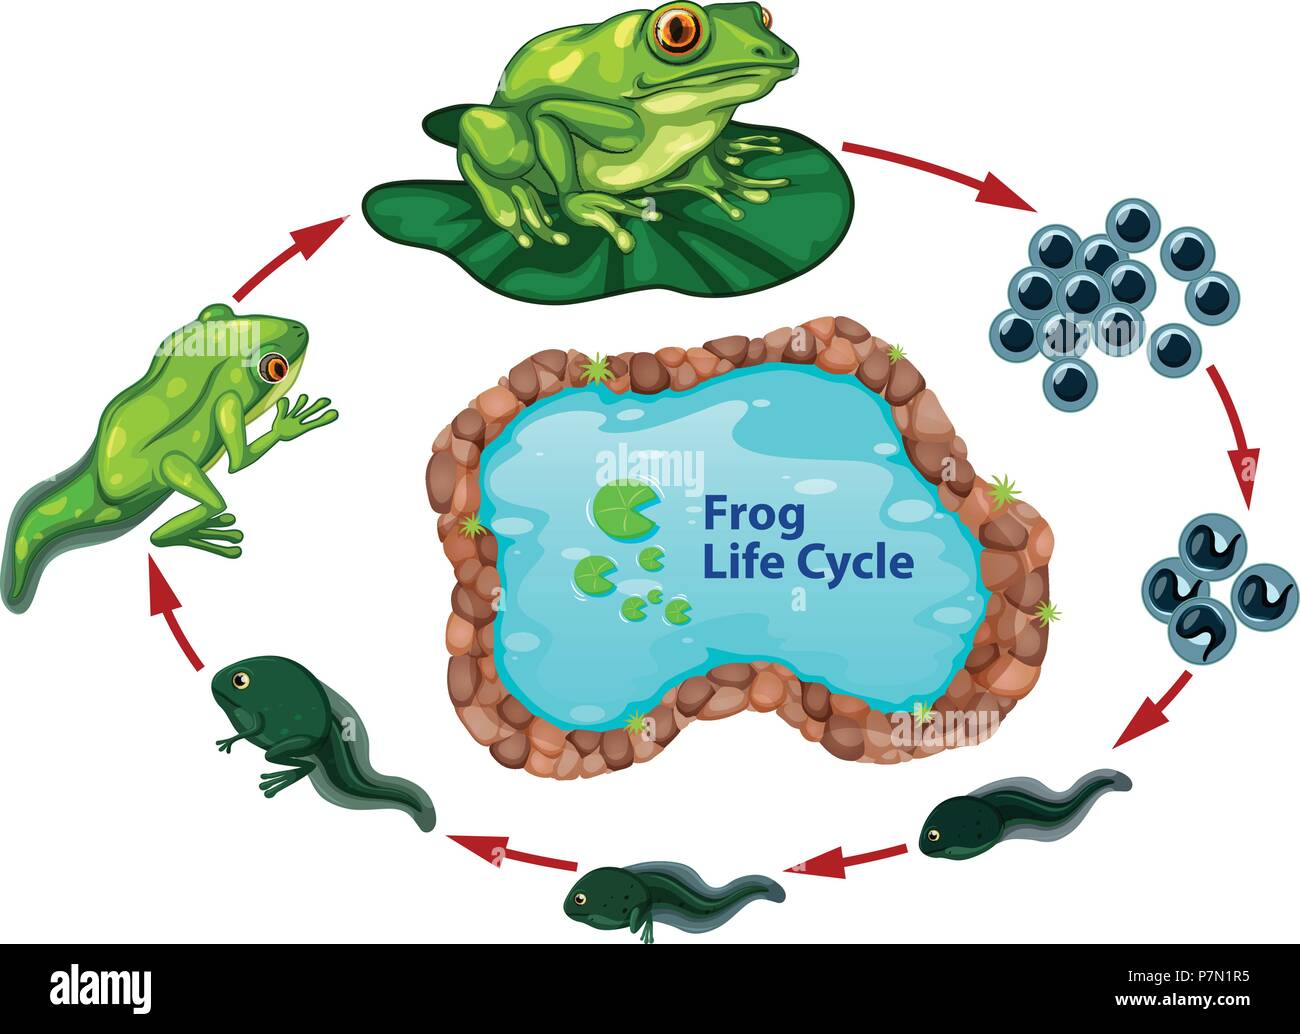 The Frog Life Cycle Illustration Stock Vector Art